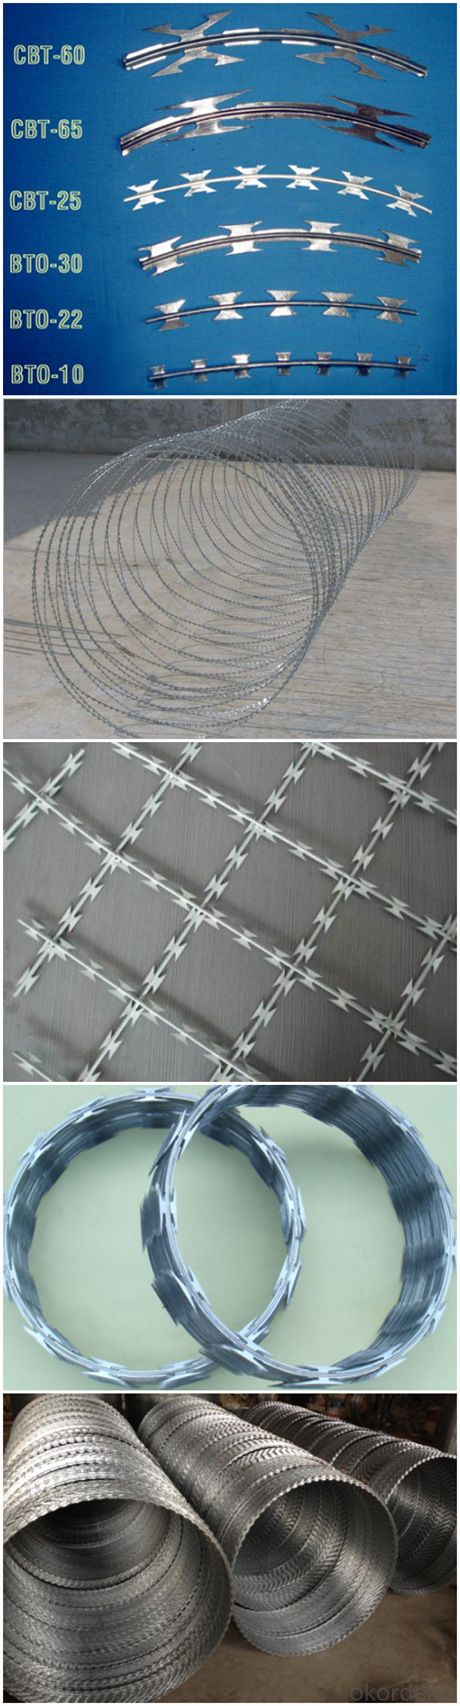 Made in China Concertina Razor Barbed Wire